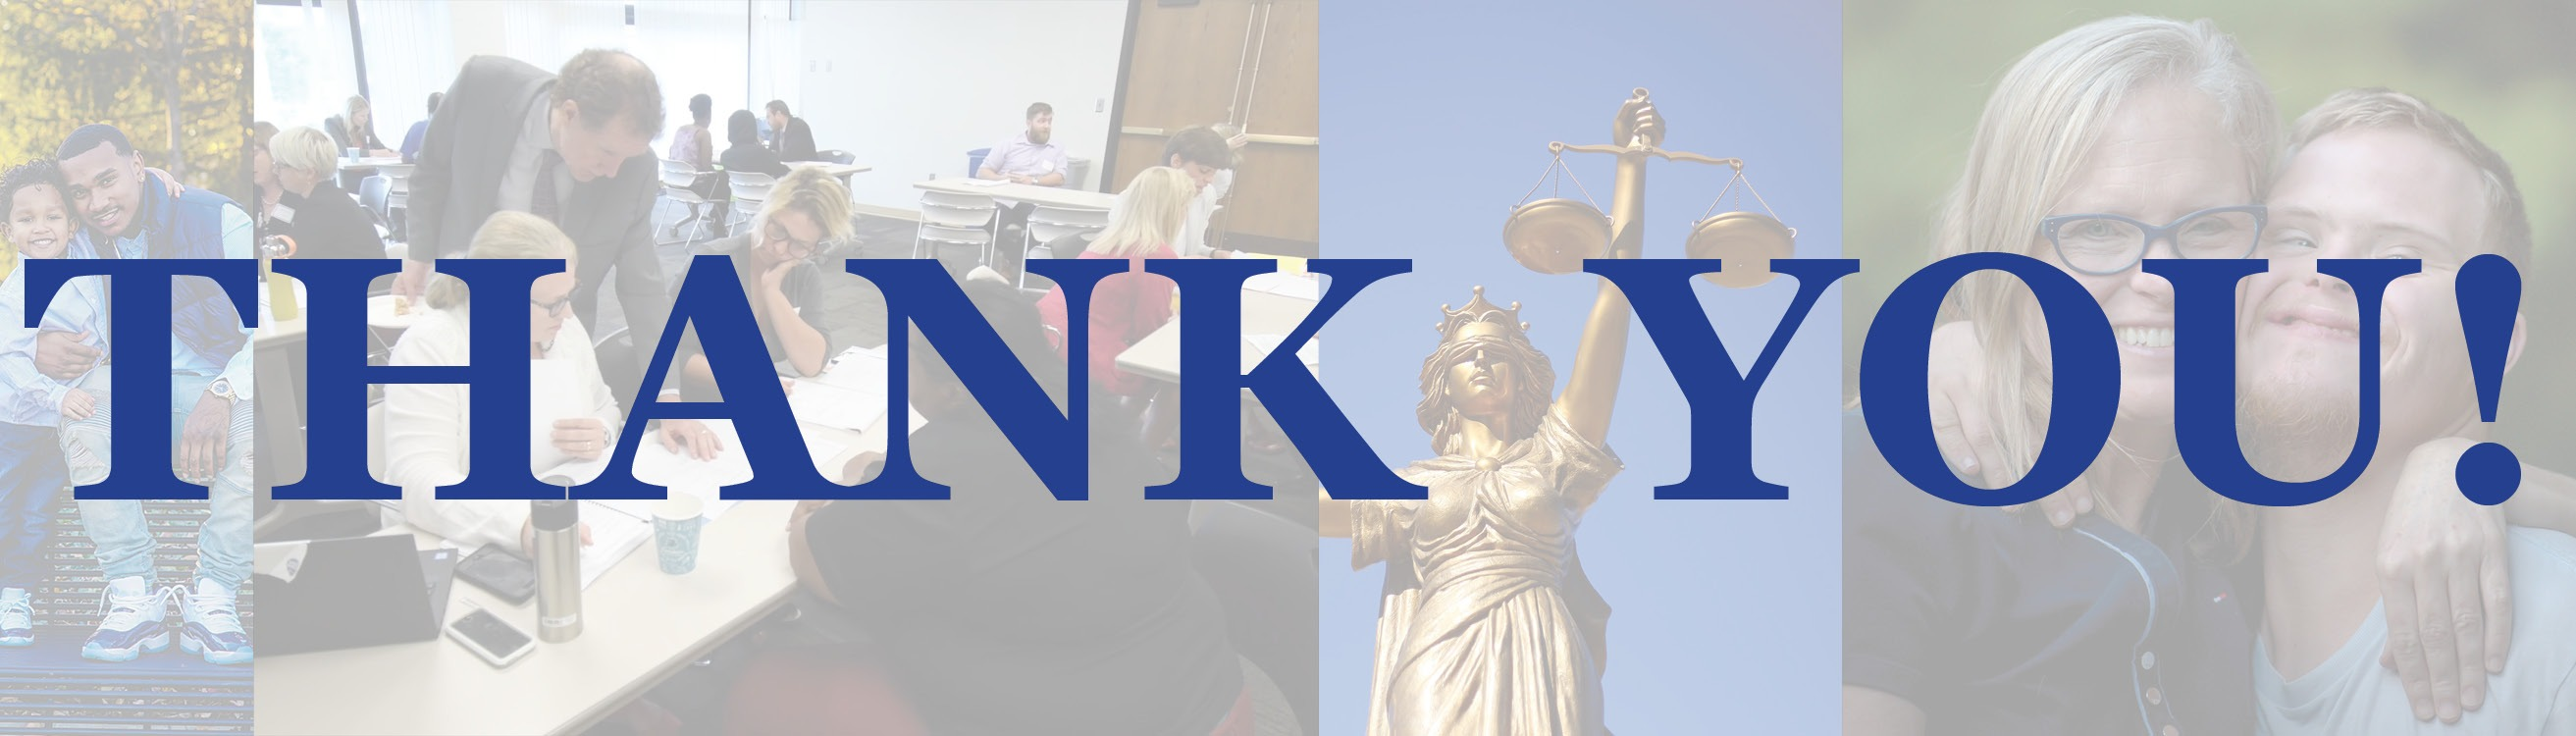 "blue serif text reading ""thank you!"" over faded photos of people and a statue of Lady Justice"